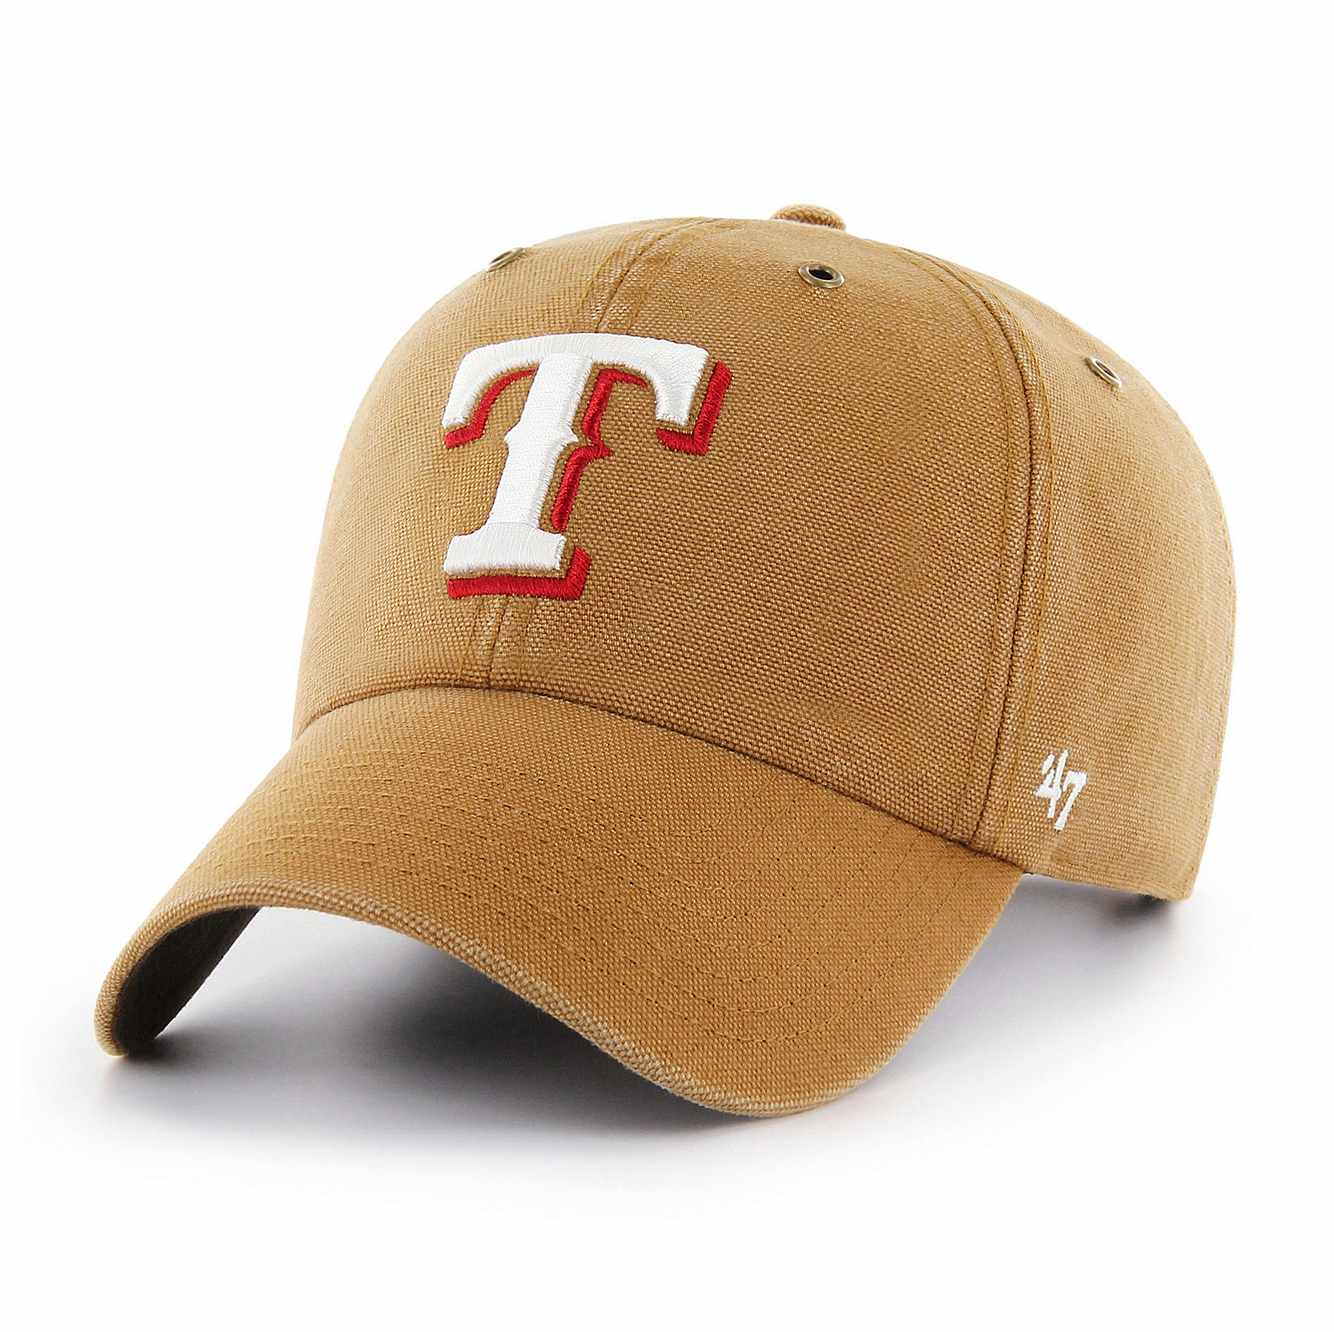 Picture of Texas Rangers Carhartt x '47 Clean Up in Carhartt Brown